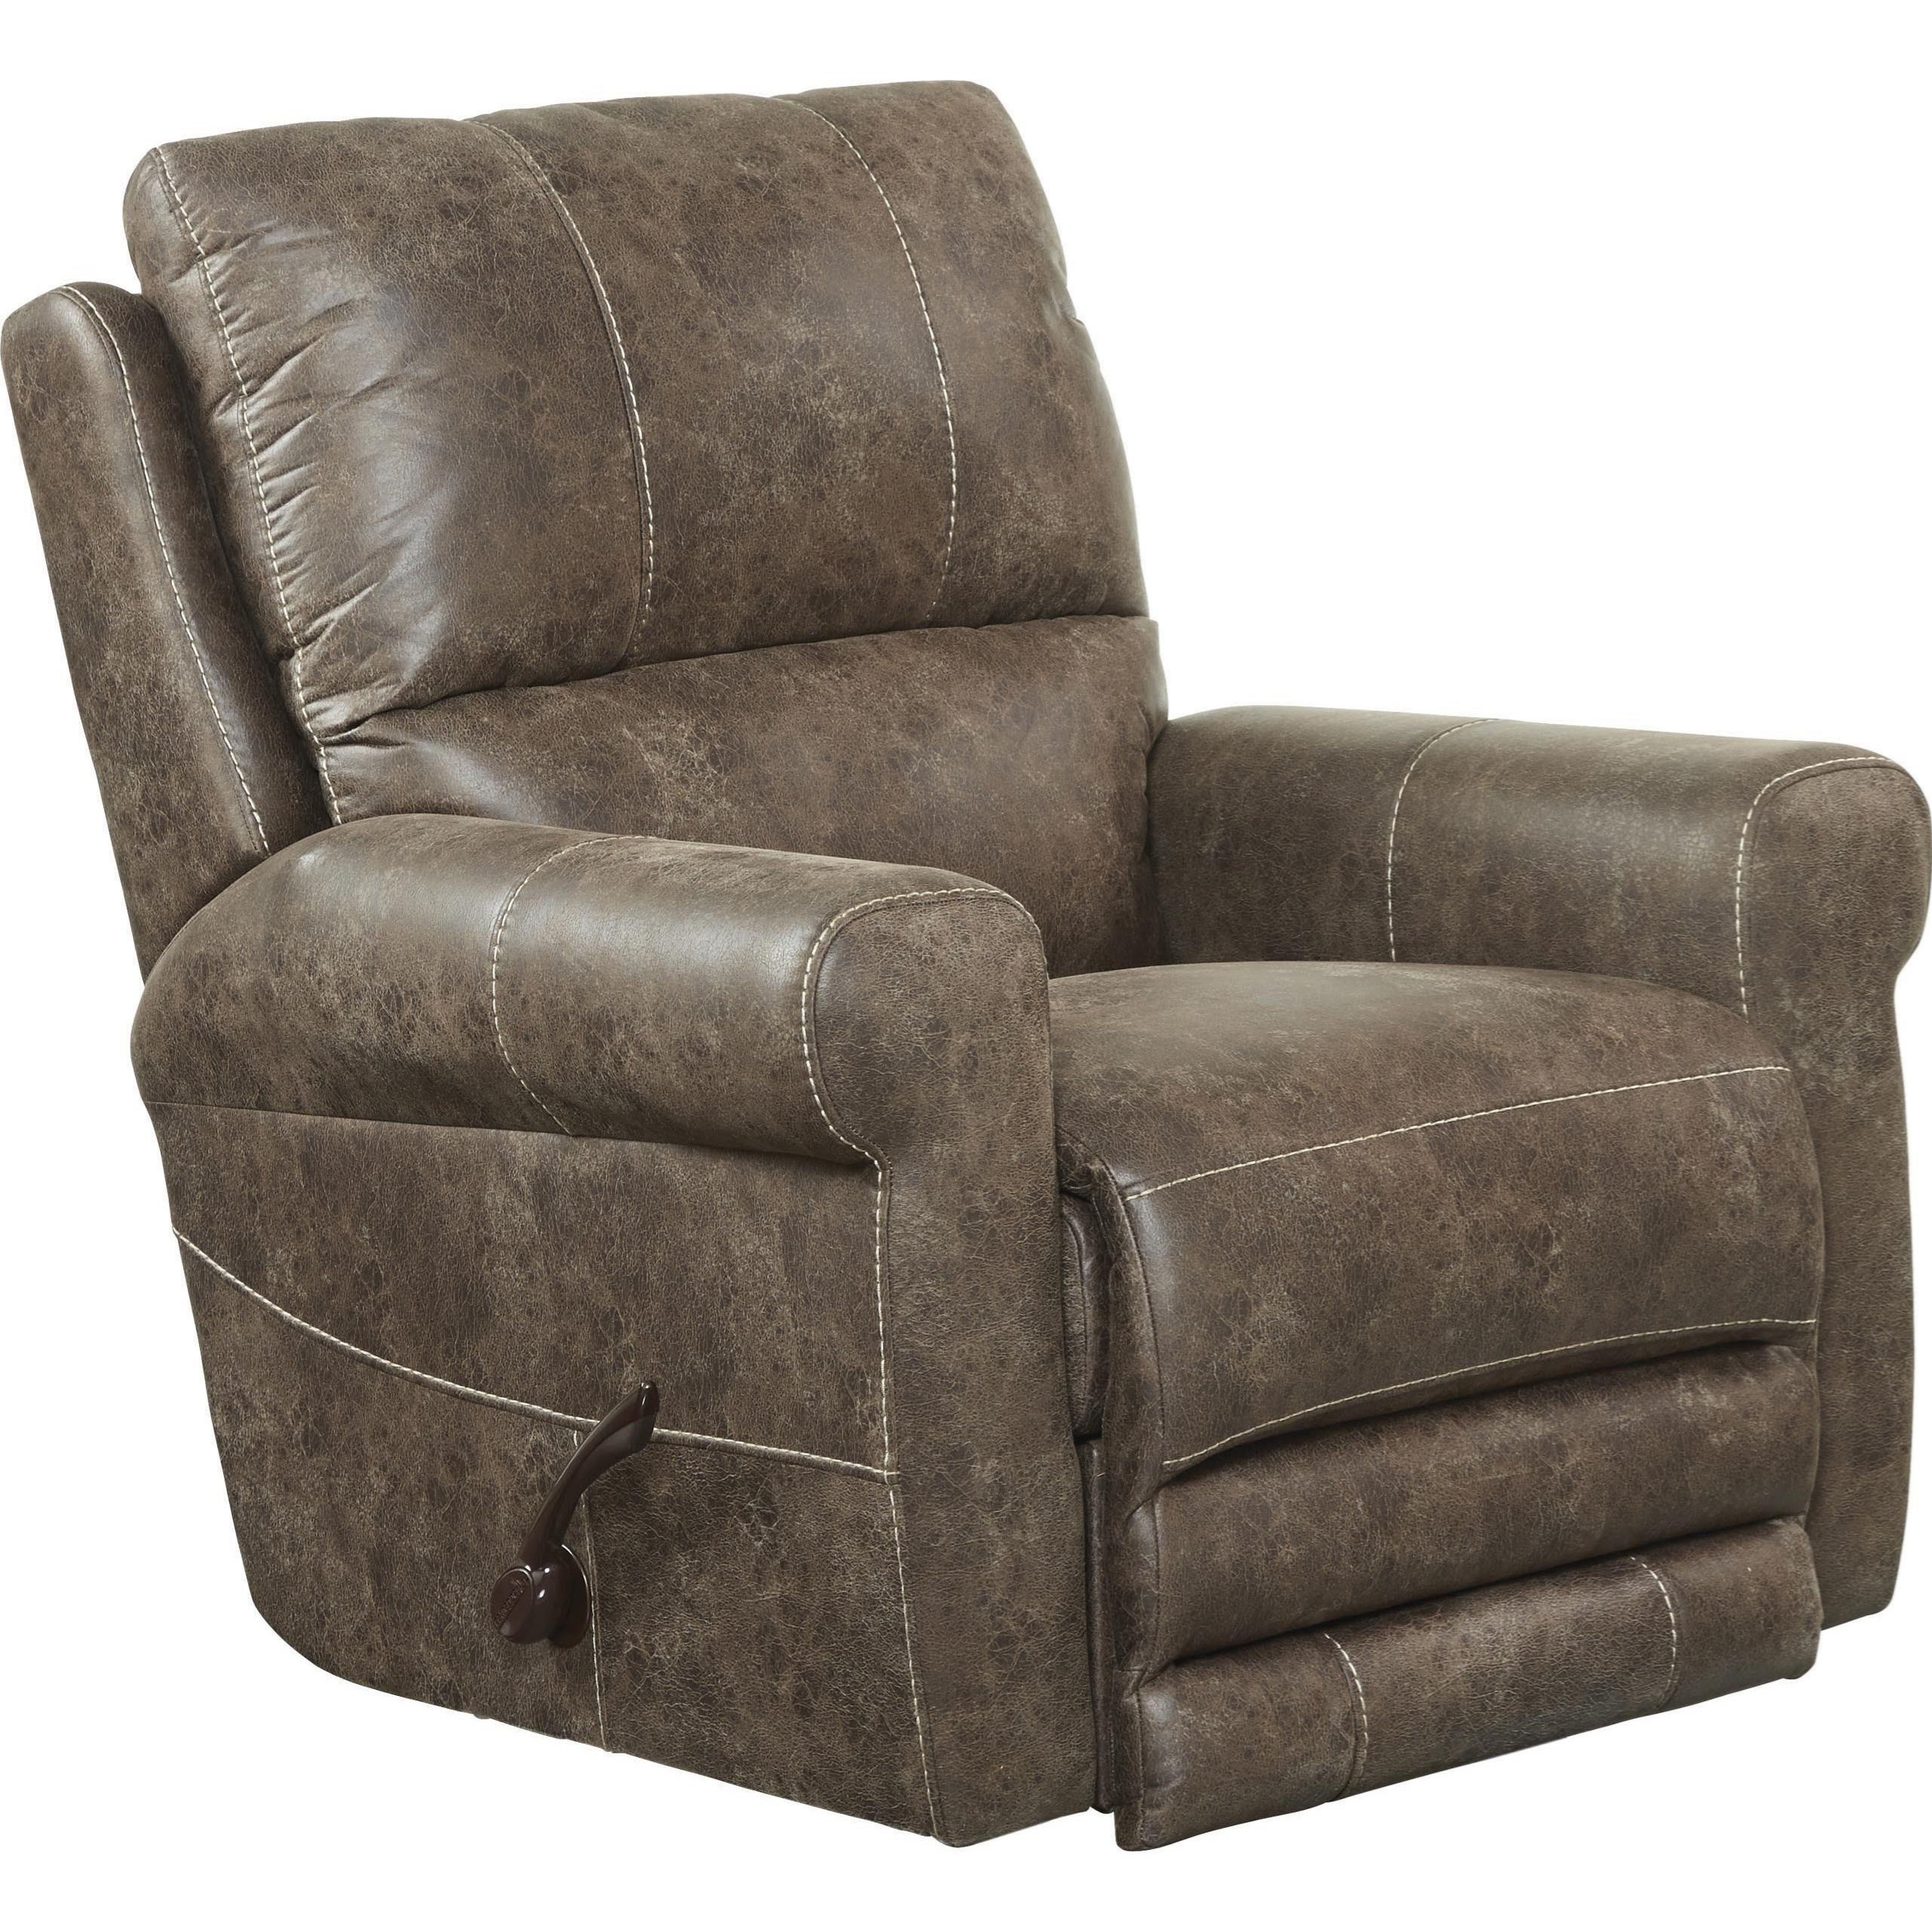 Maddie Power Wall Hugger Recliner with USB Port by Catnapper at Northeast Factory Direct